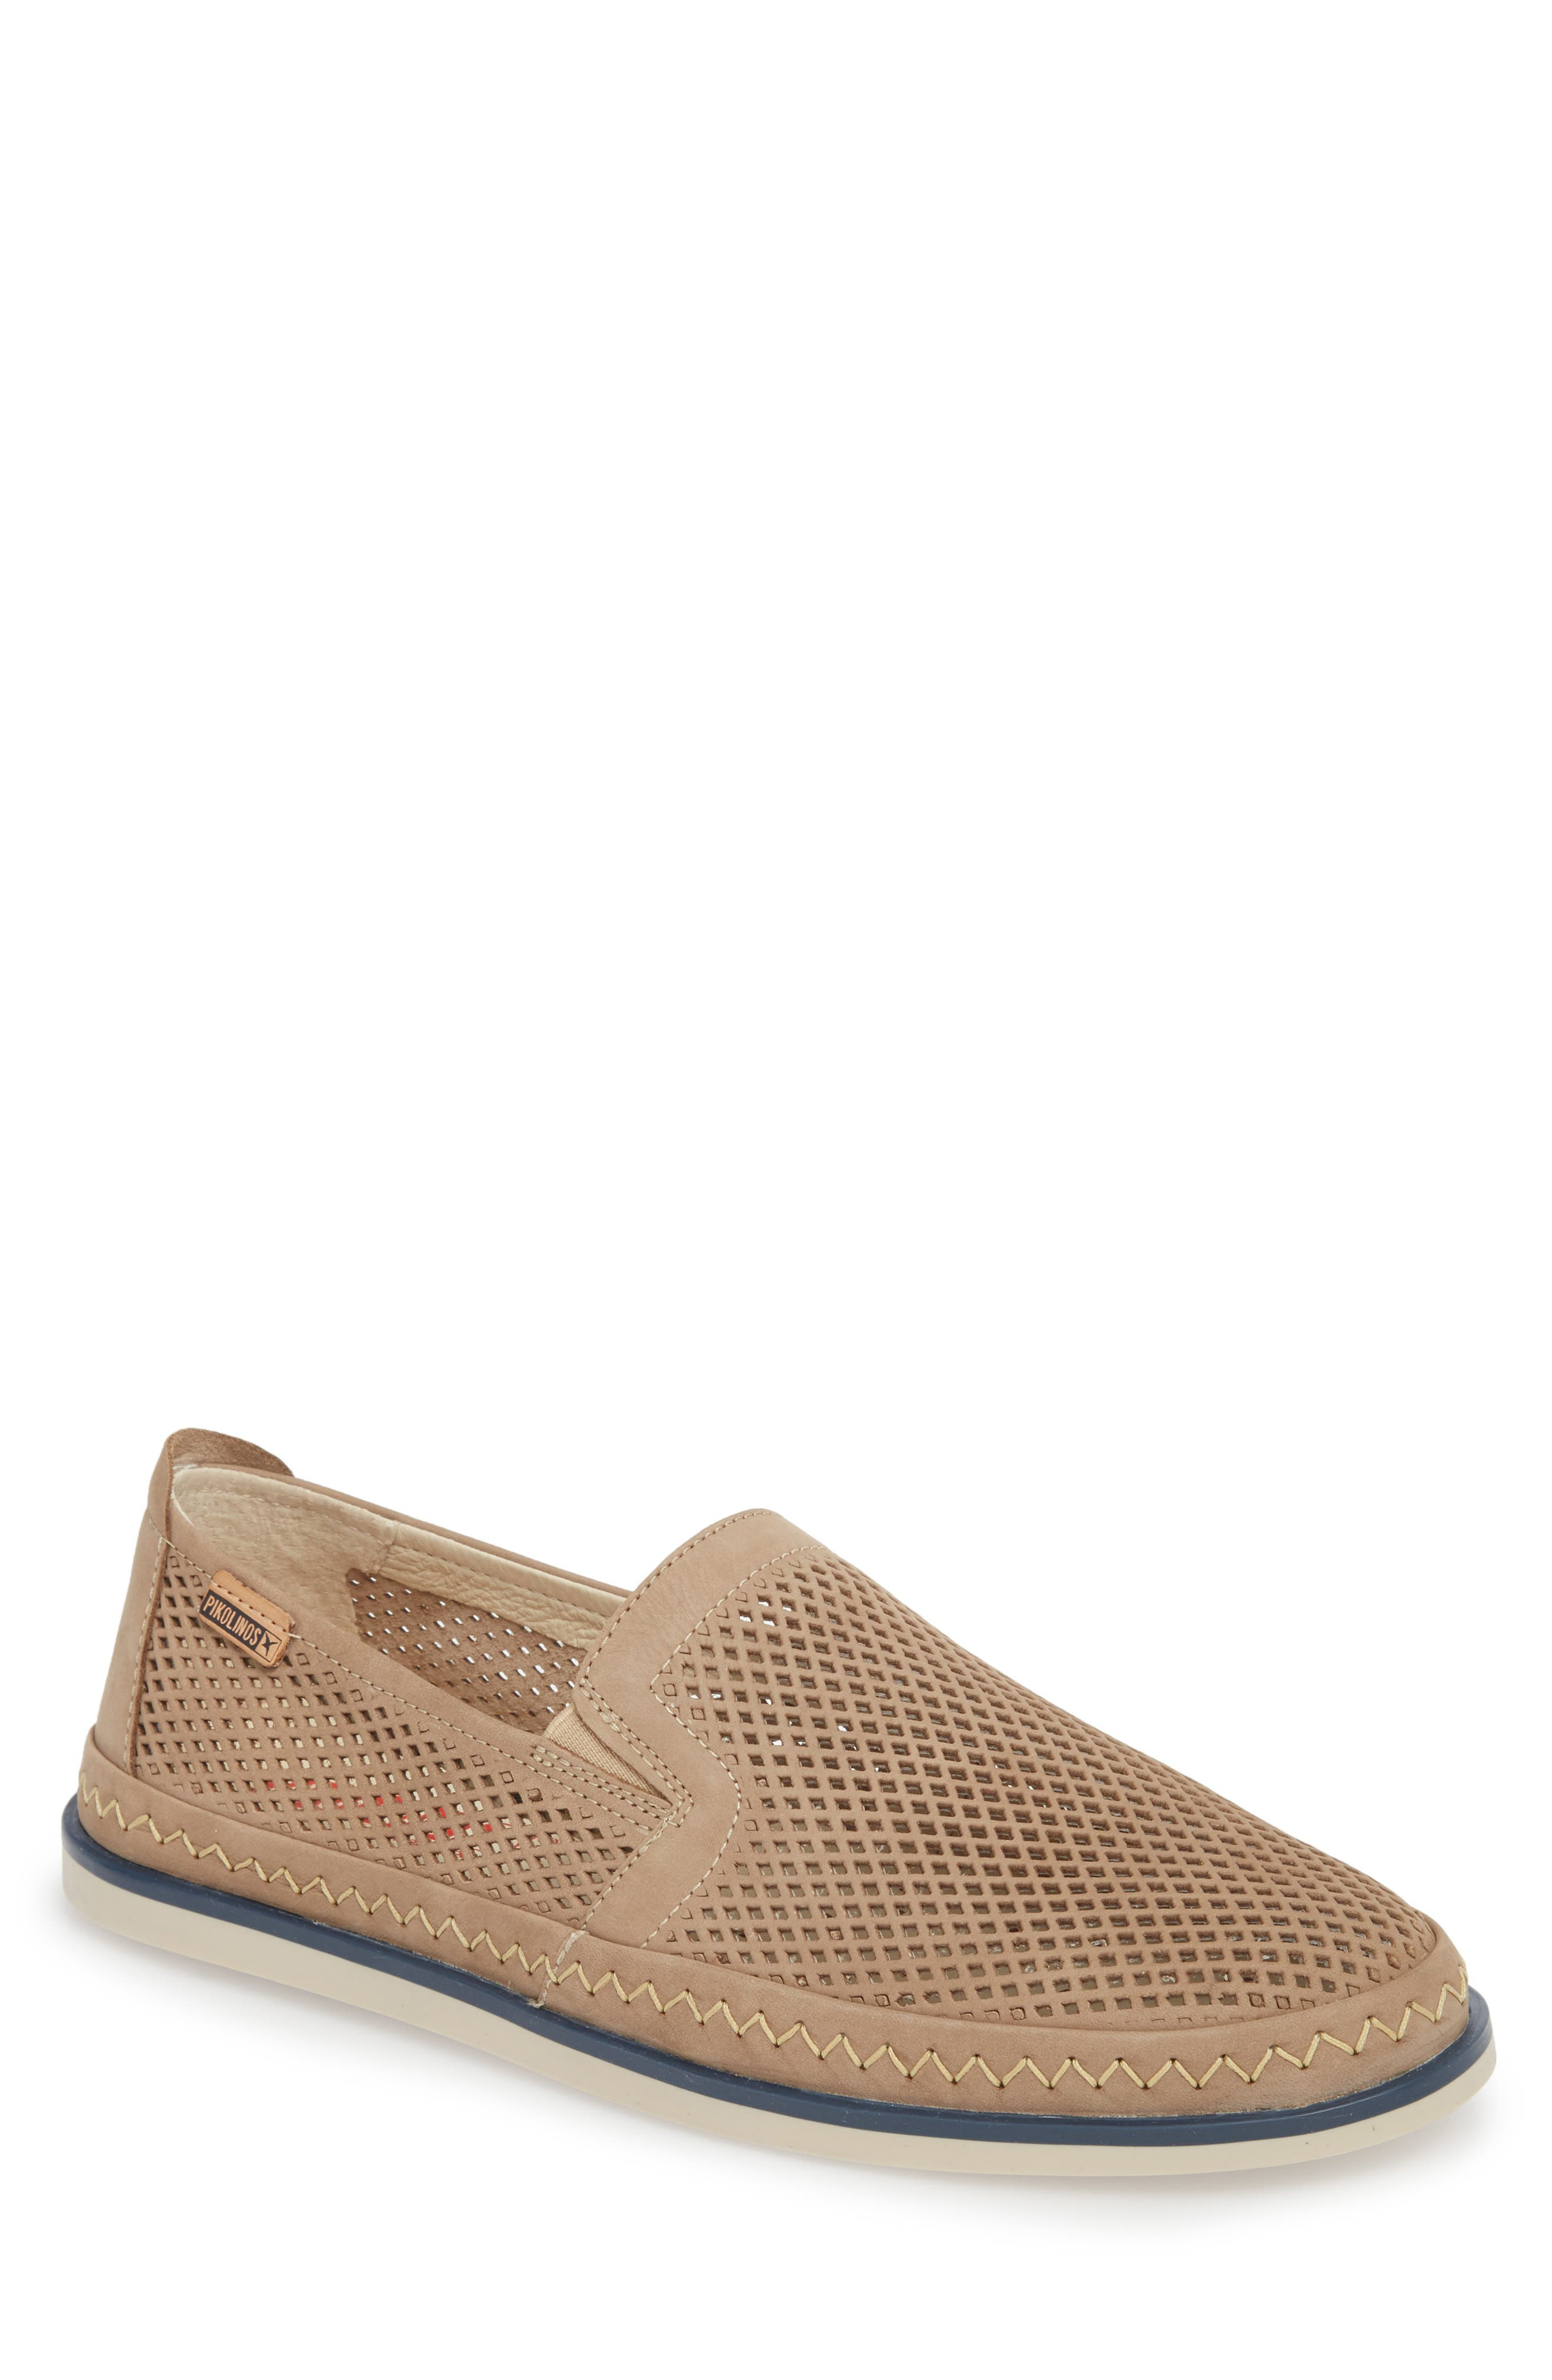 Linares Slip-On Loafer,                         Main,                         color, Piedra Leather